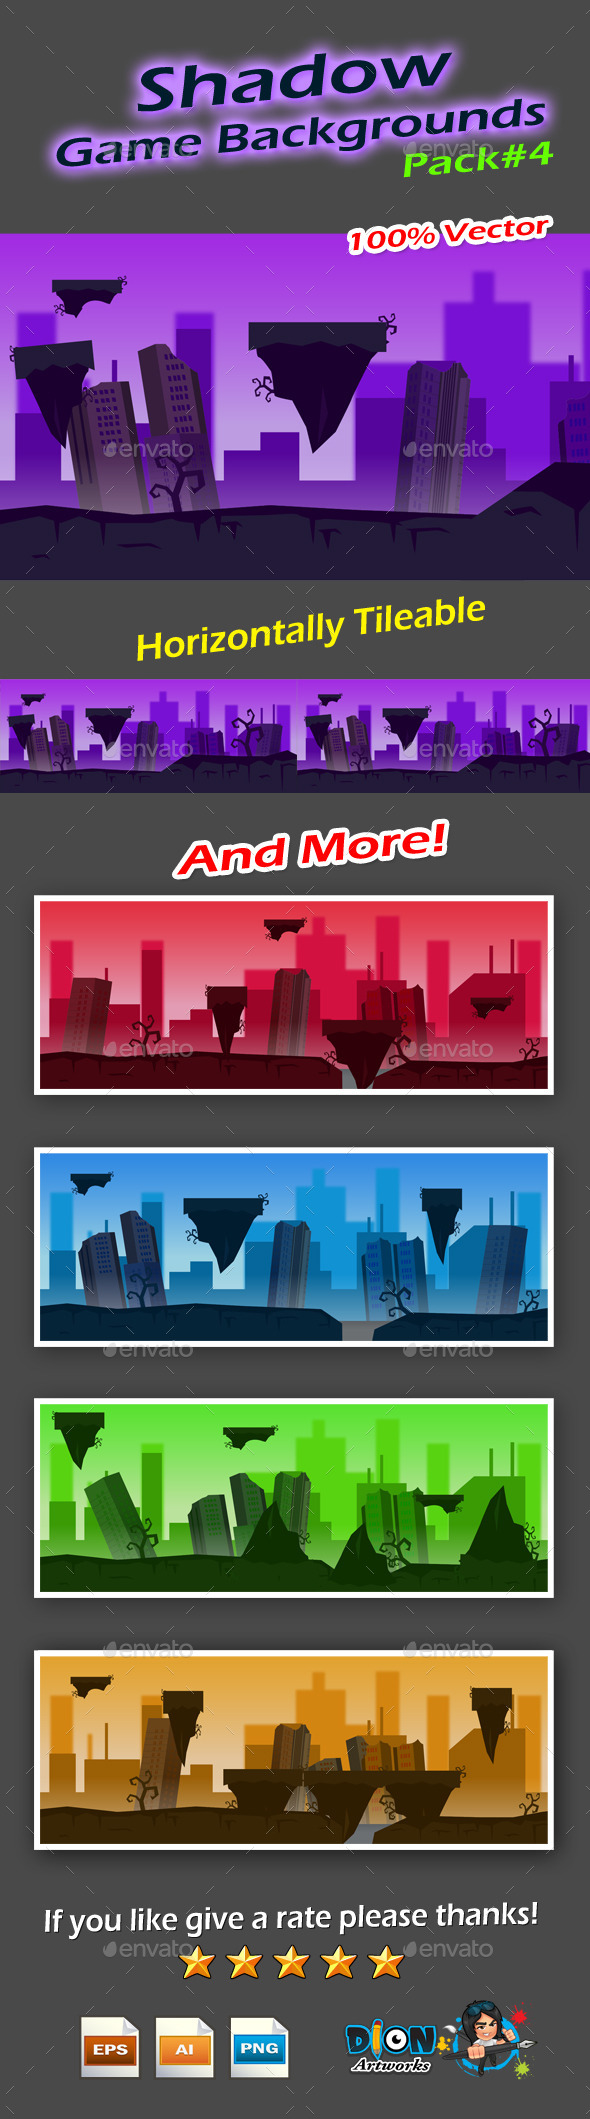 Shadow Game Backgrounds Pack-4 - Backgrounds Game Assets